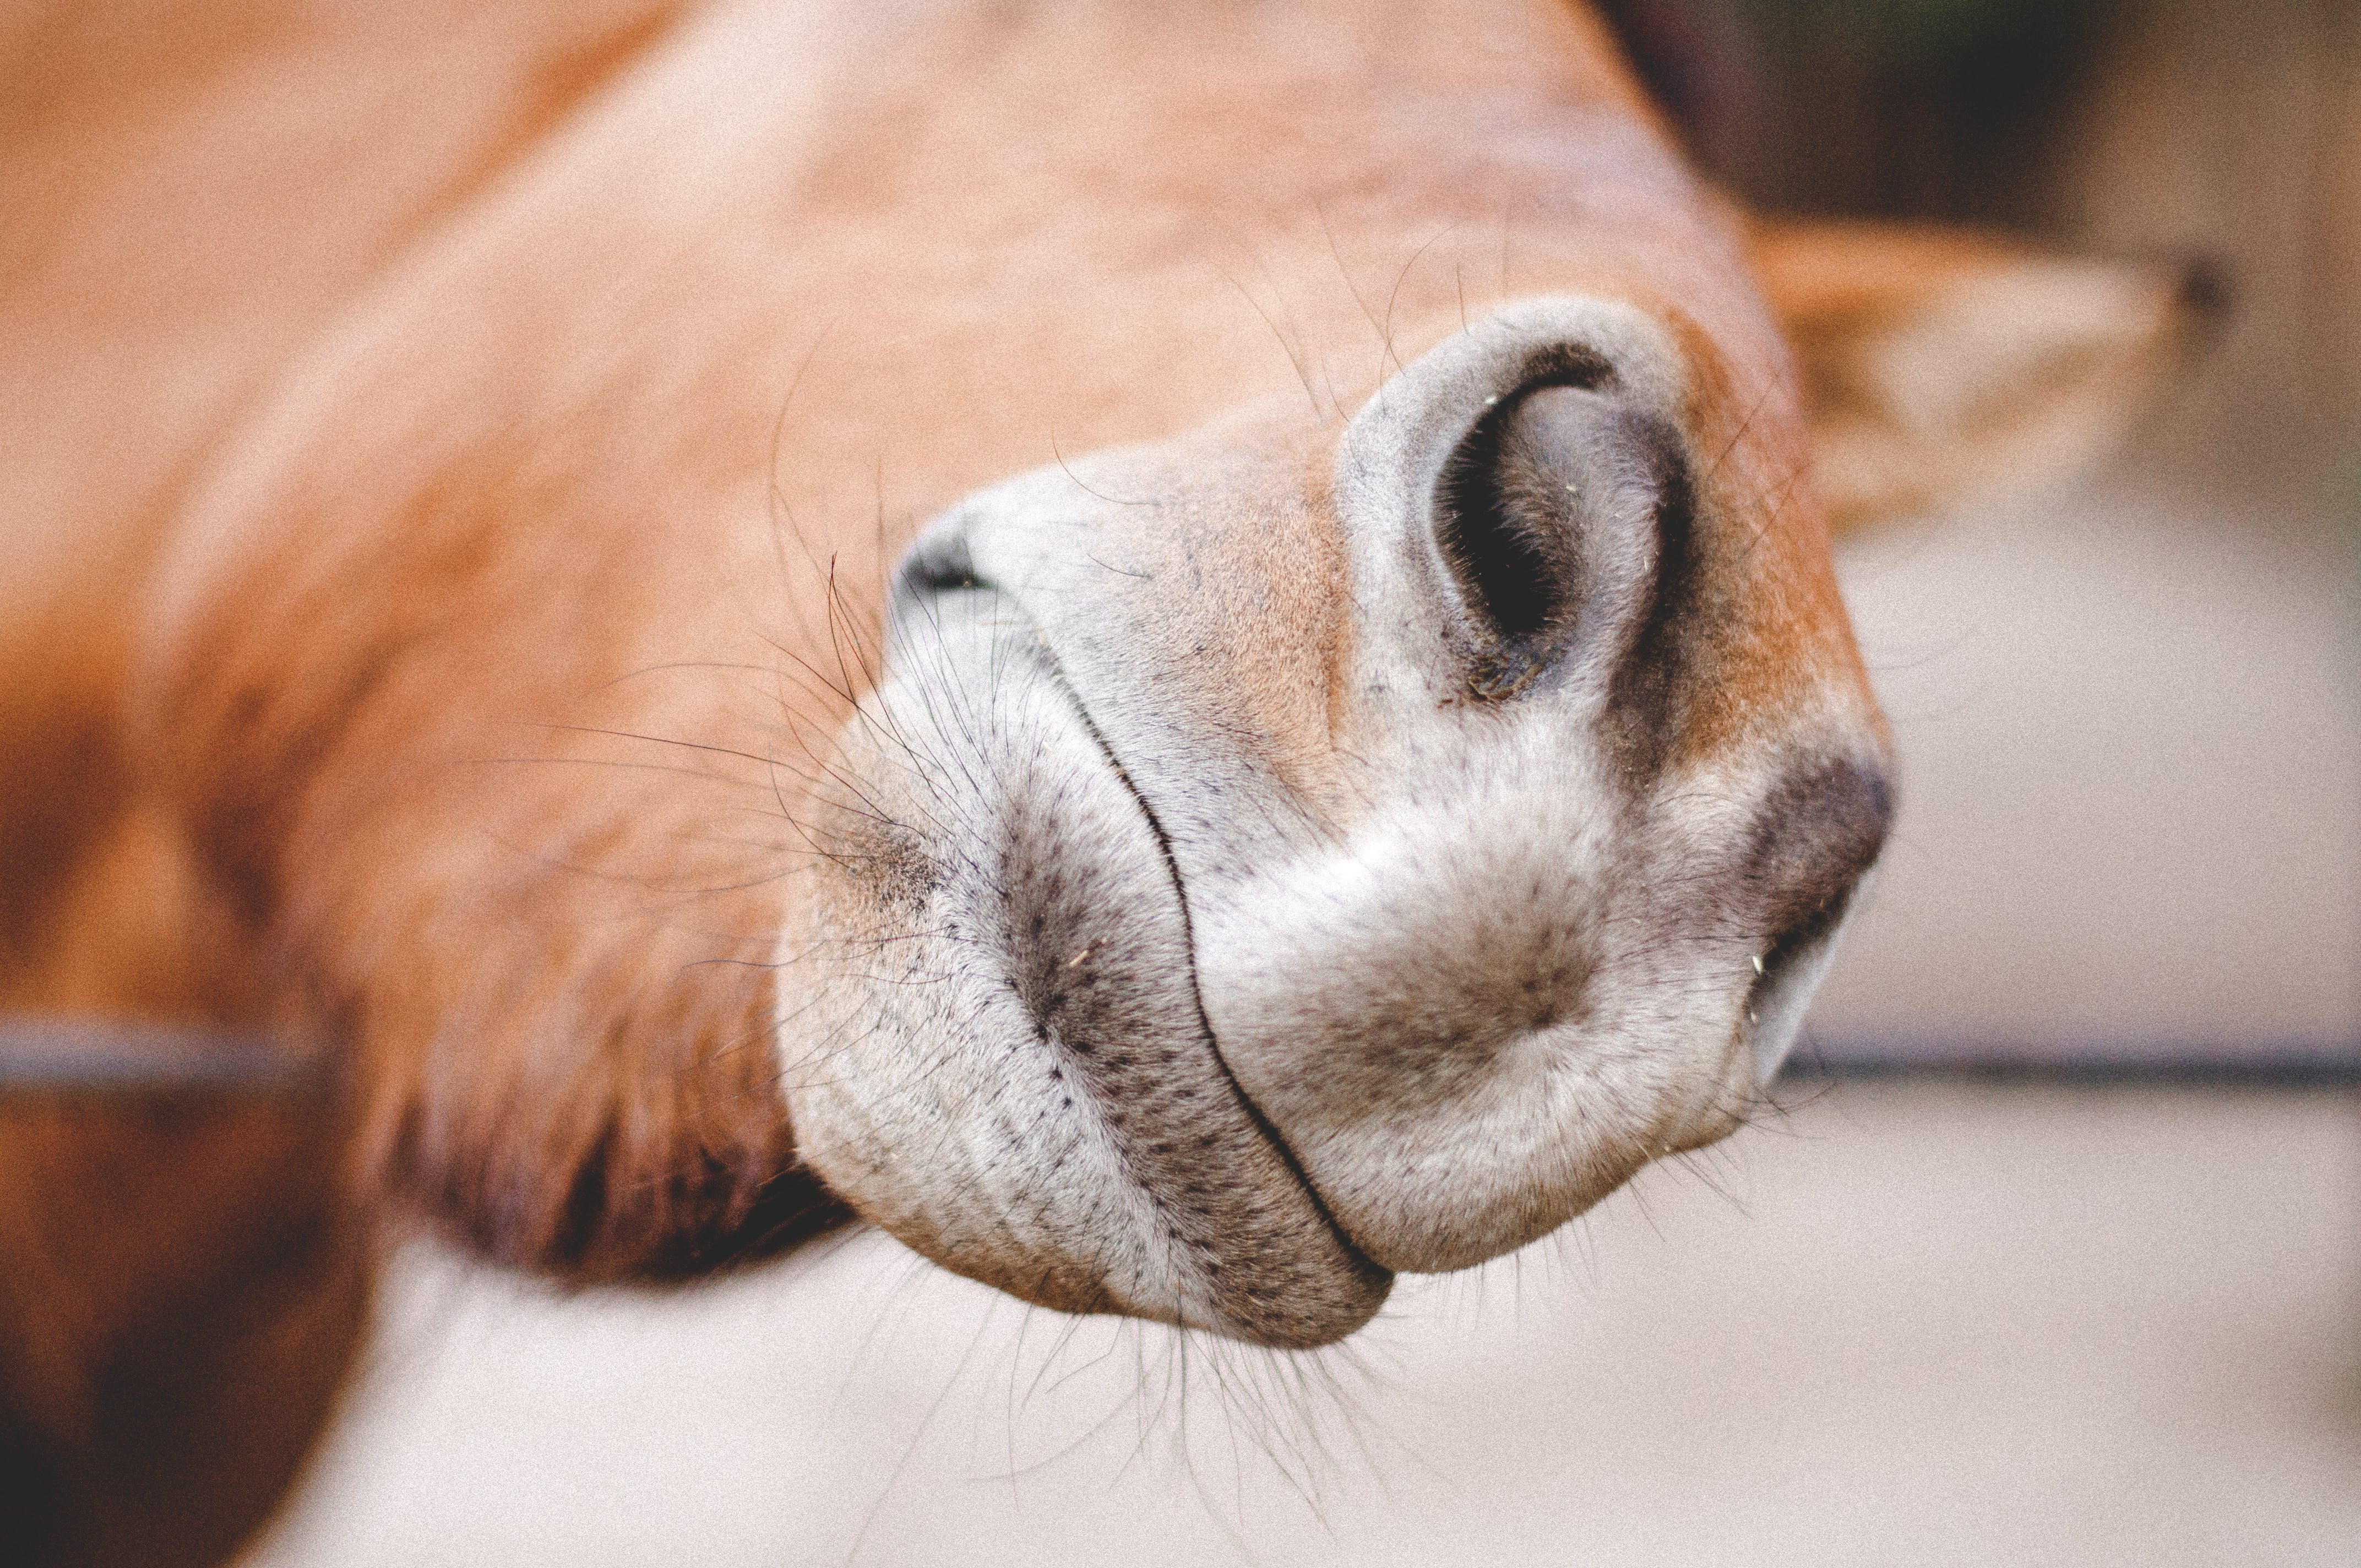 Close-up Photography of Brown Animal Nose